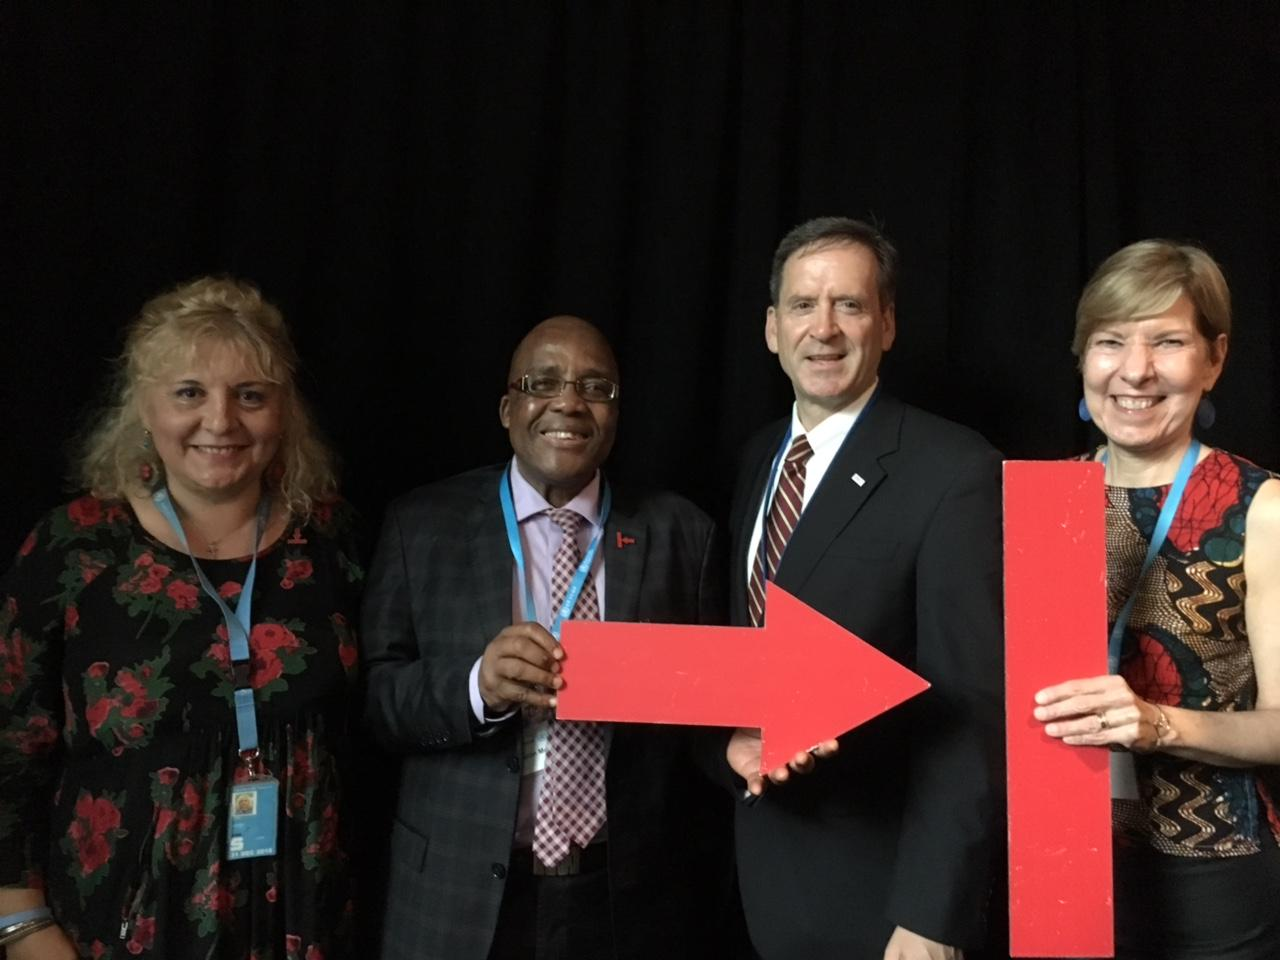 Stop TB Partnership Executive Director Dr. Lucica Ditiu; South Africa Minister of Health and Stop TB Coordinating Chair Dr. Aaron Motsoaledi; USAID Administrator Mark Green; and RESULTS Executive Director and Stop TB Coordinating Board Vice Chair Joanne Carter.